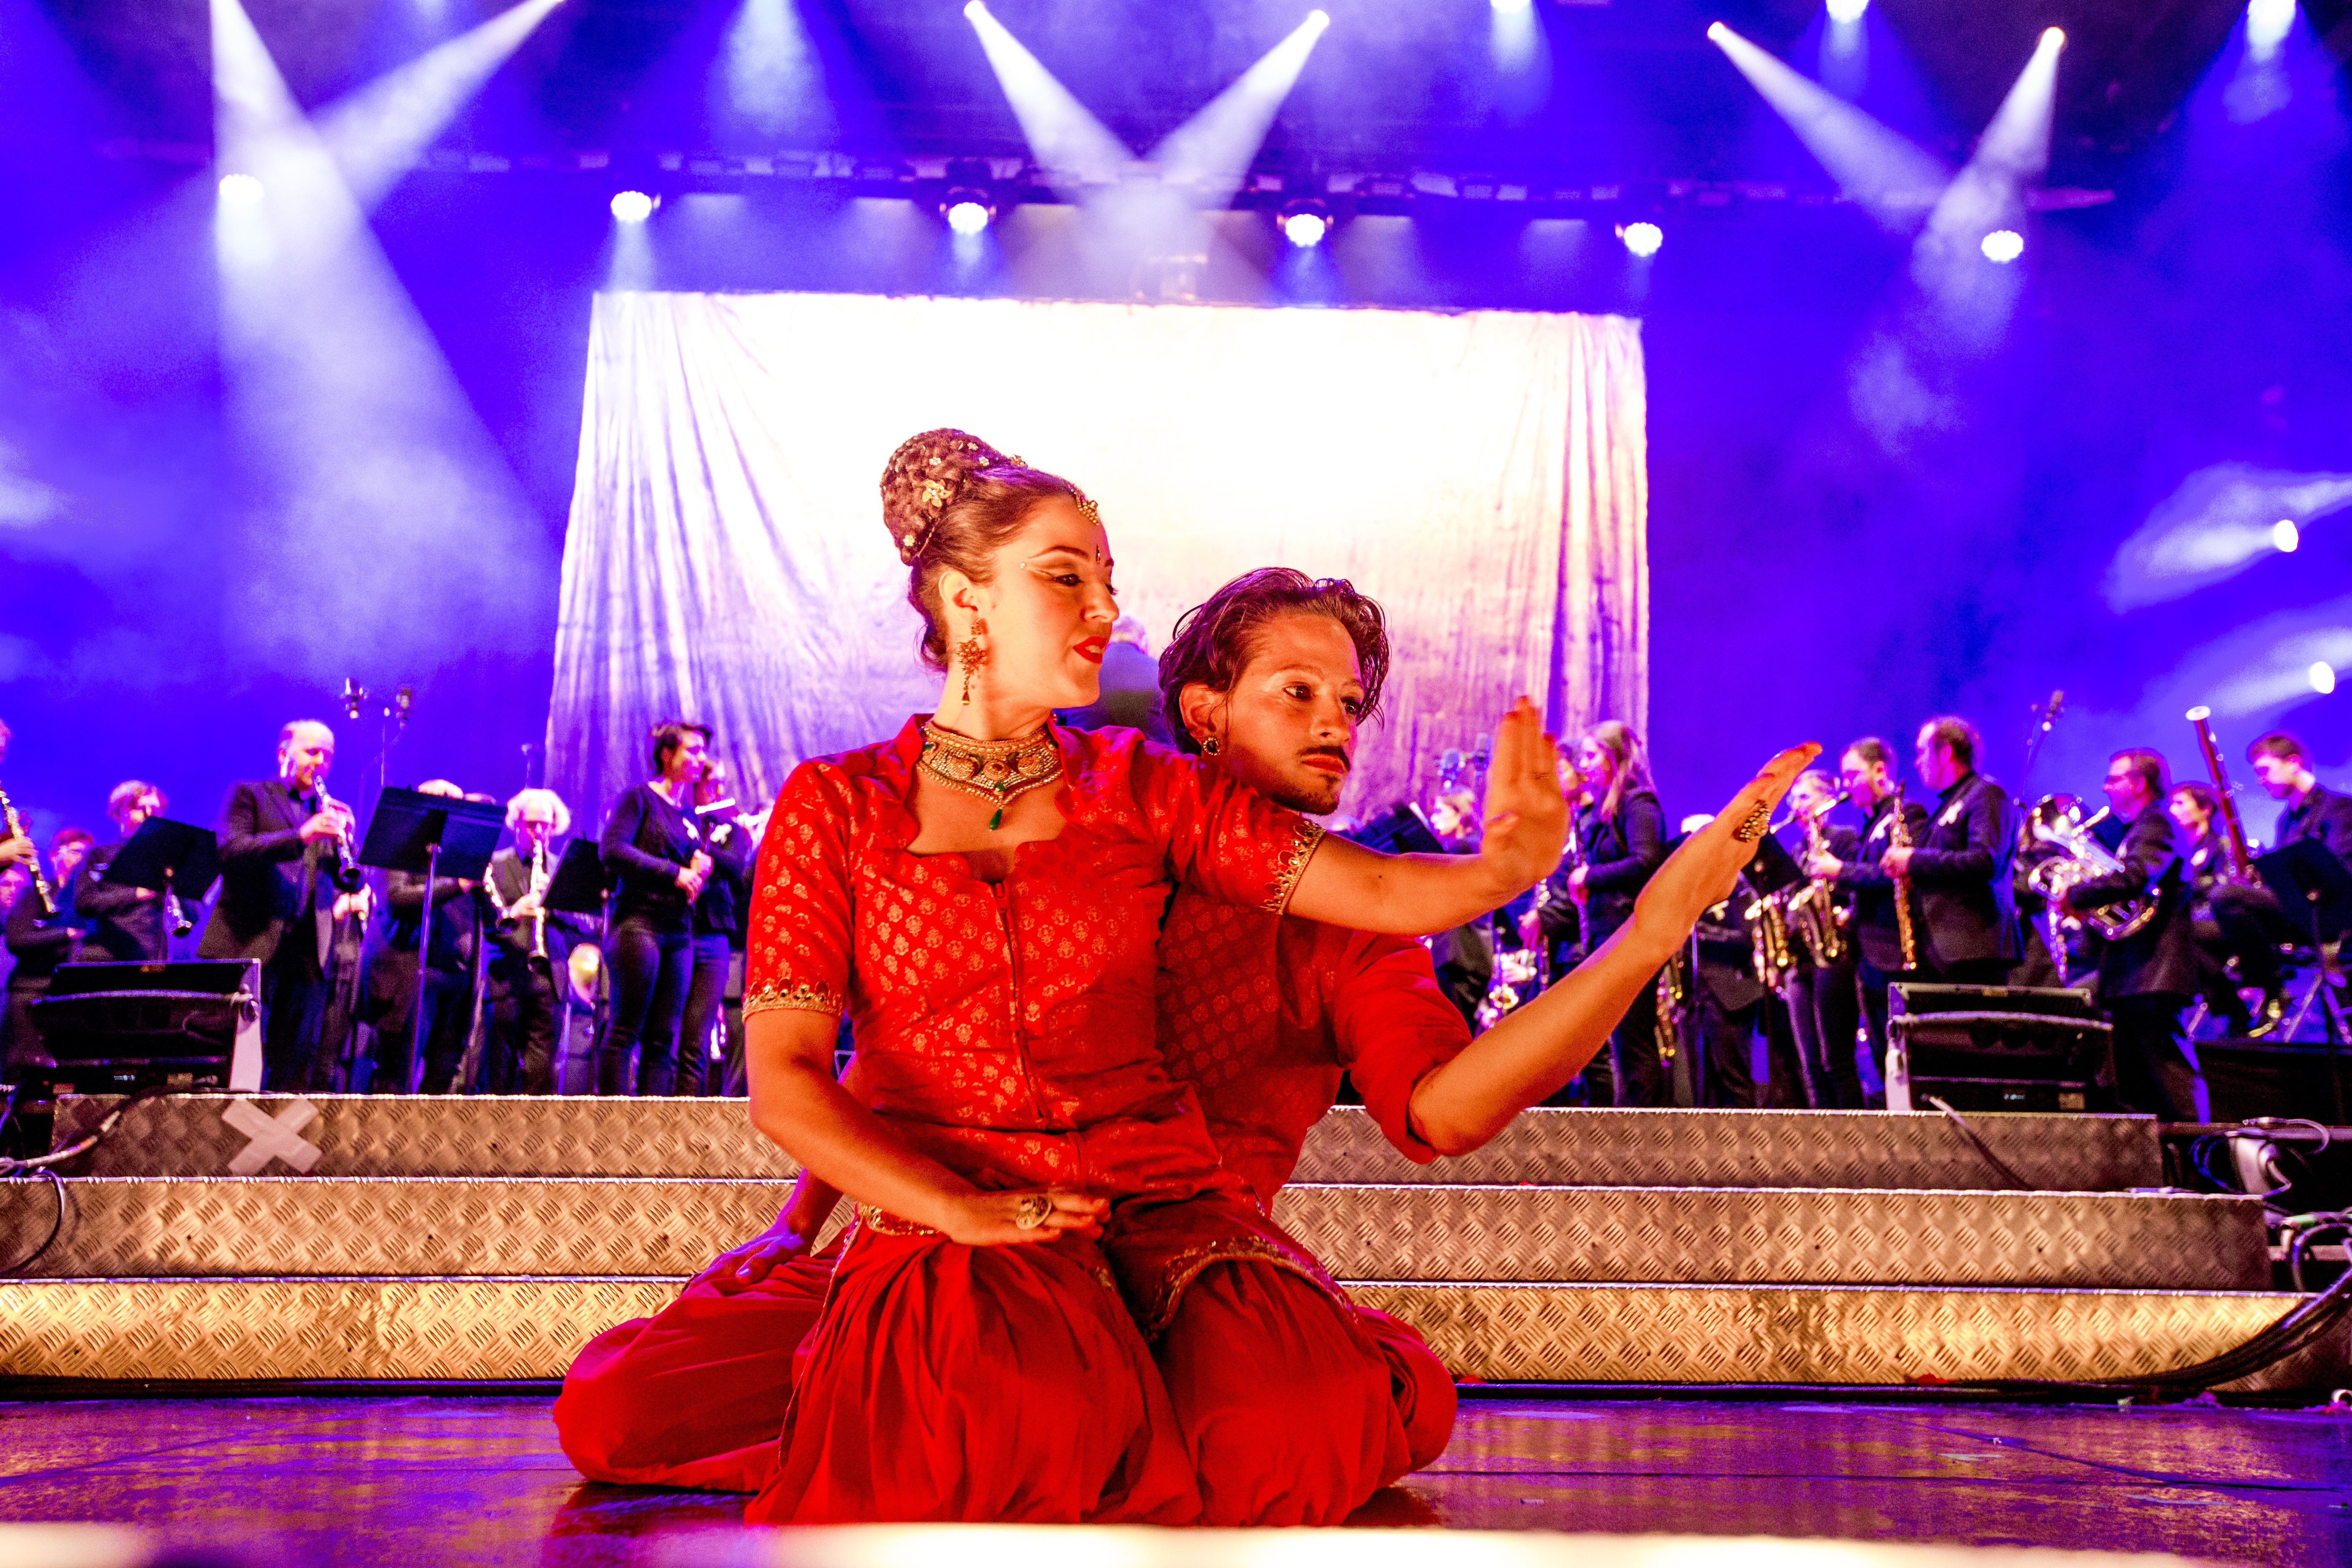 Bollylicious Ieper GoneWest